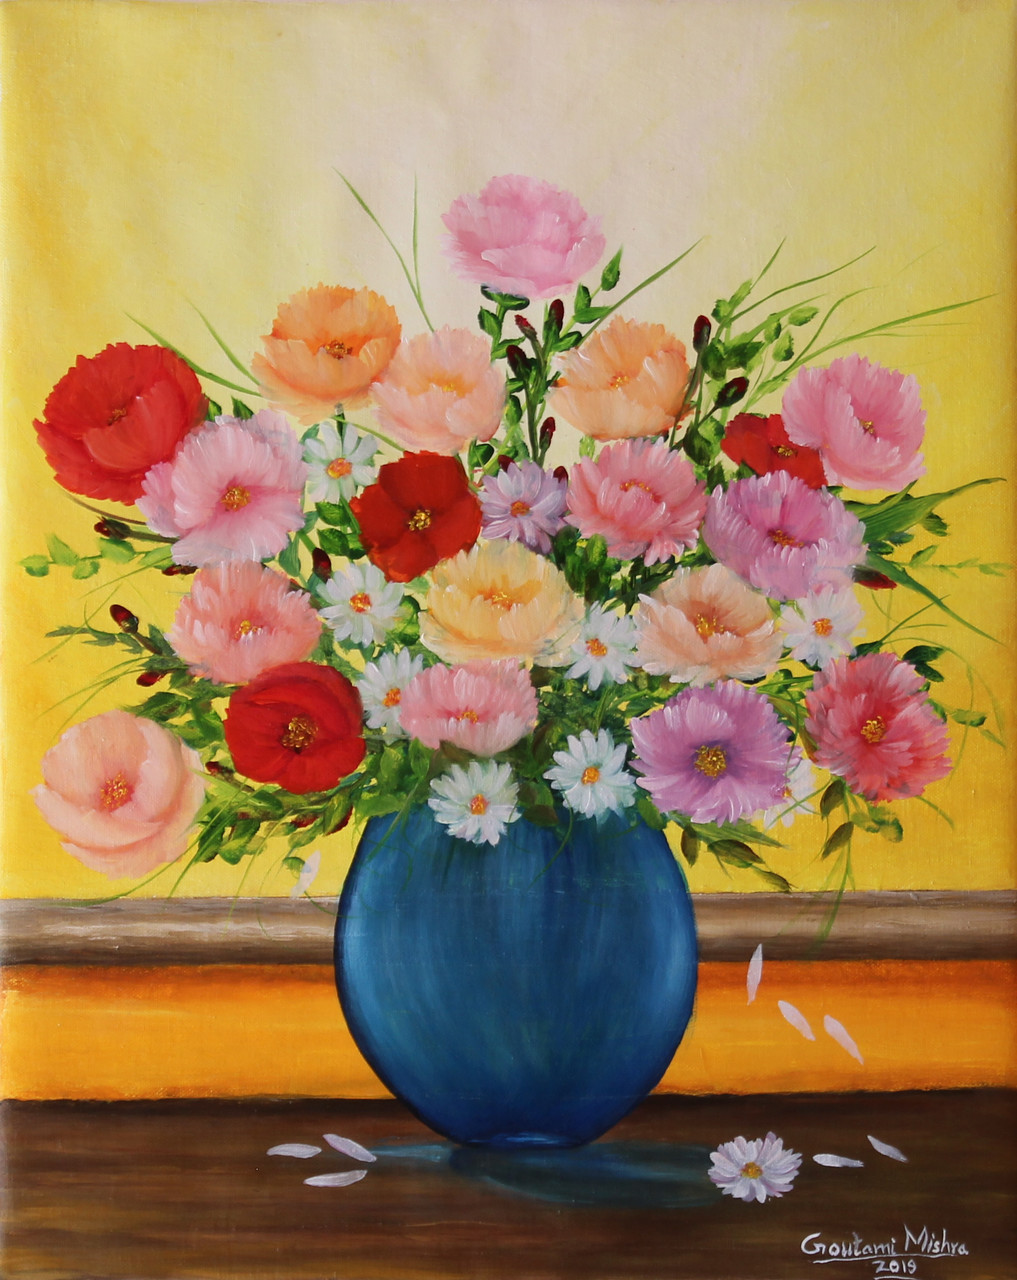 Buy Flower Vase Handmade Painting by GOUTAMI MISHRA. CodeART_976_35632 - Paintings for Sale online in India. & Buy Flower Vase Handmade Painting by GOUTAMI MISHRA. Code ...